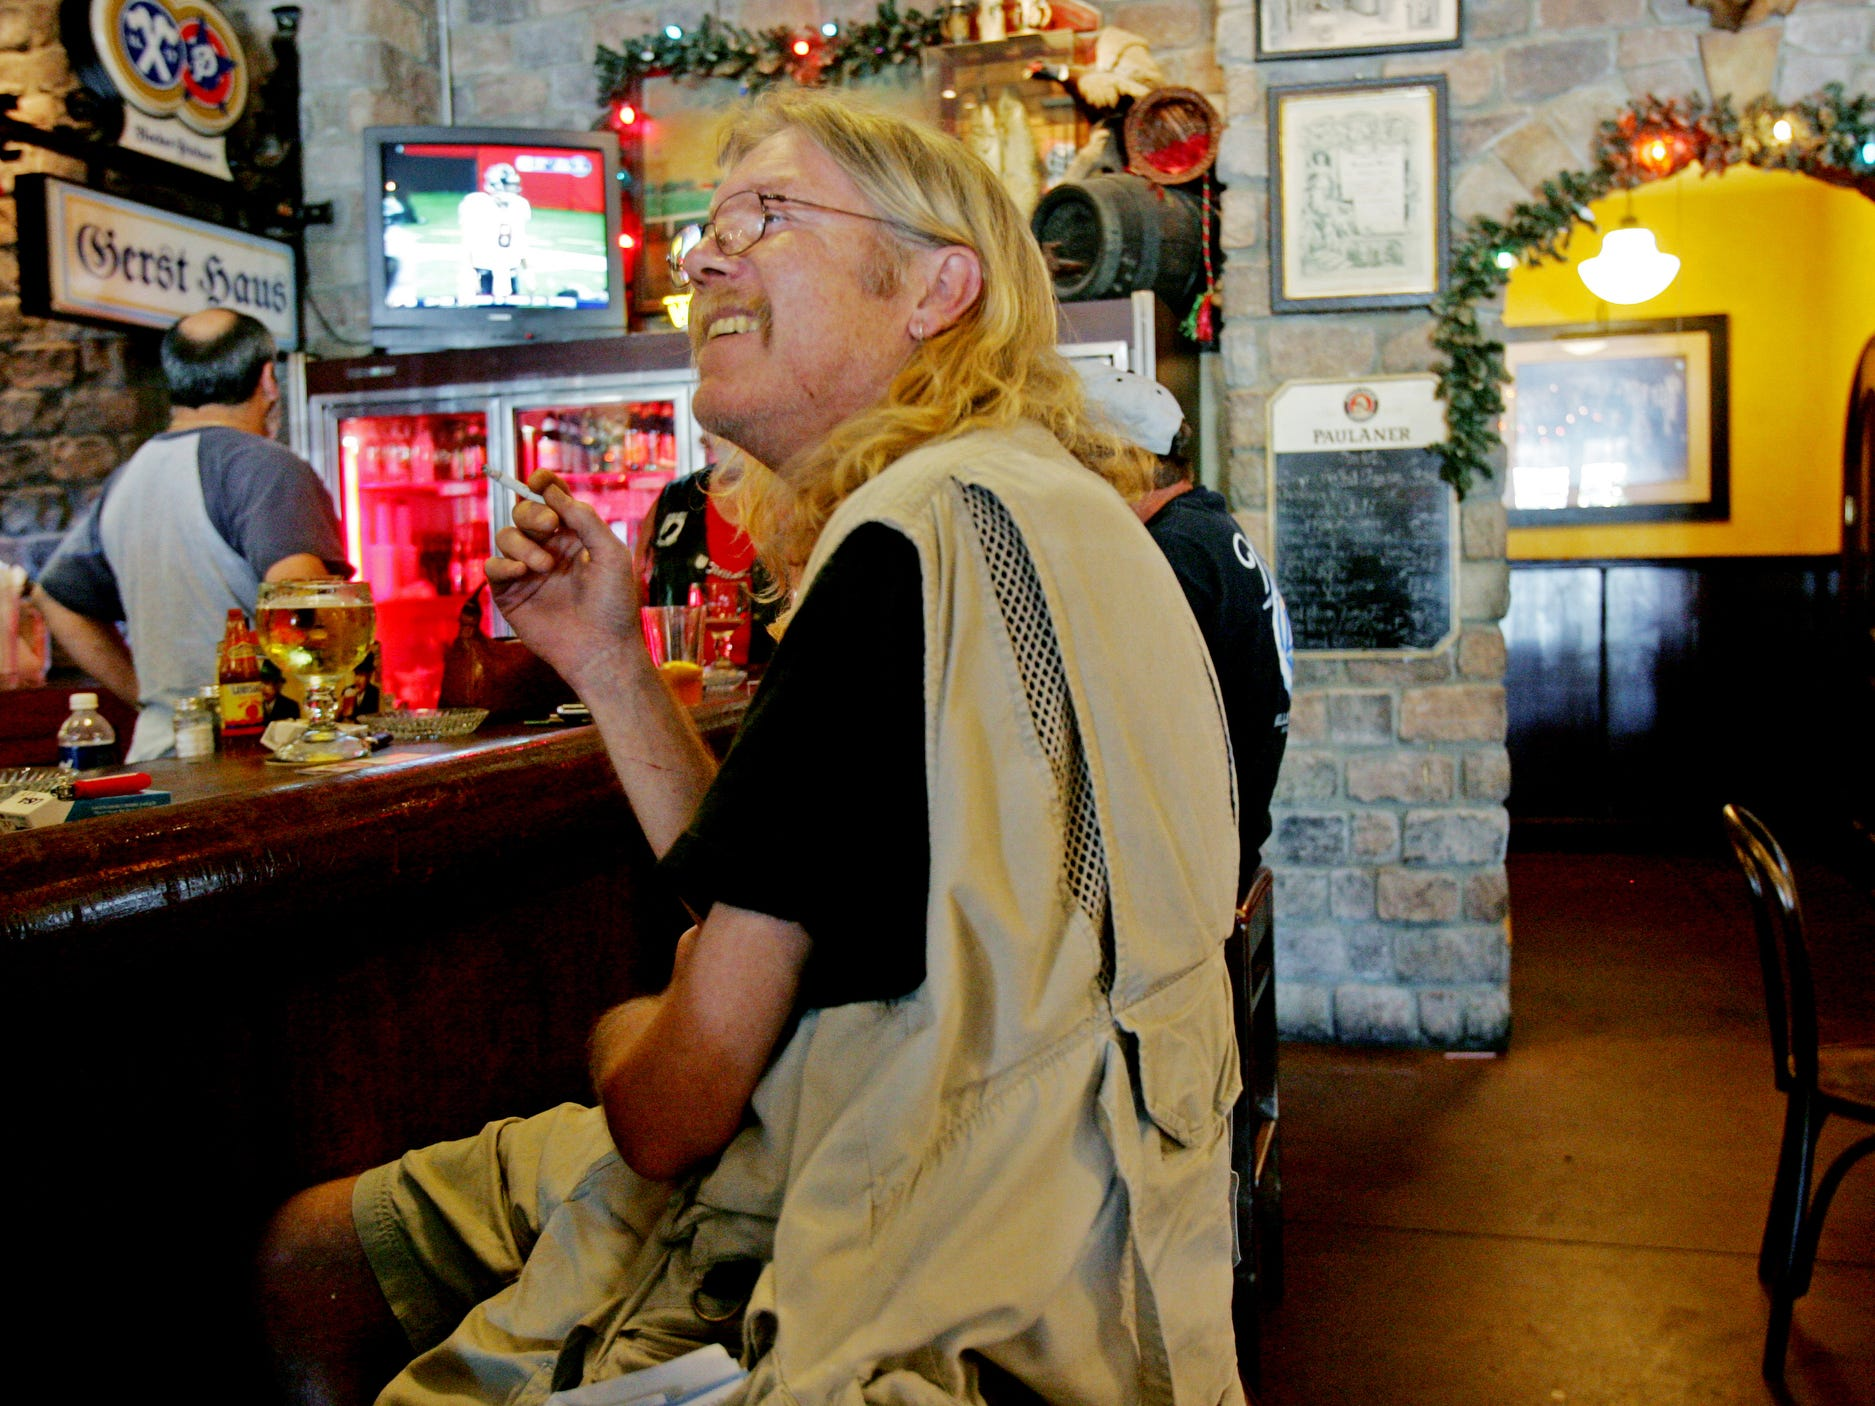 Patron Tim Lowery of Nashville enjoys a cigarette at the bar of the Gerst Haus Restaurant despite the smoking ban Sept. 30, 2007.